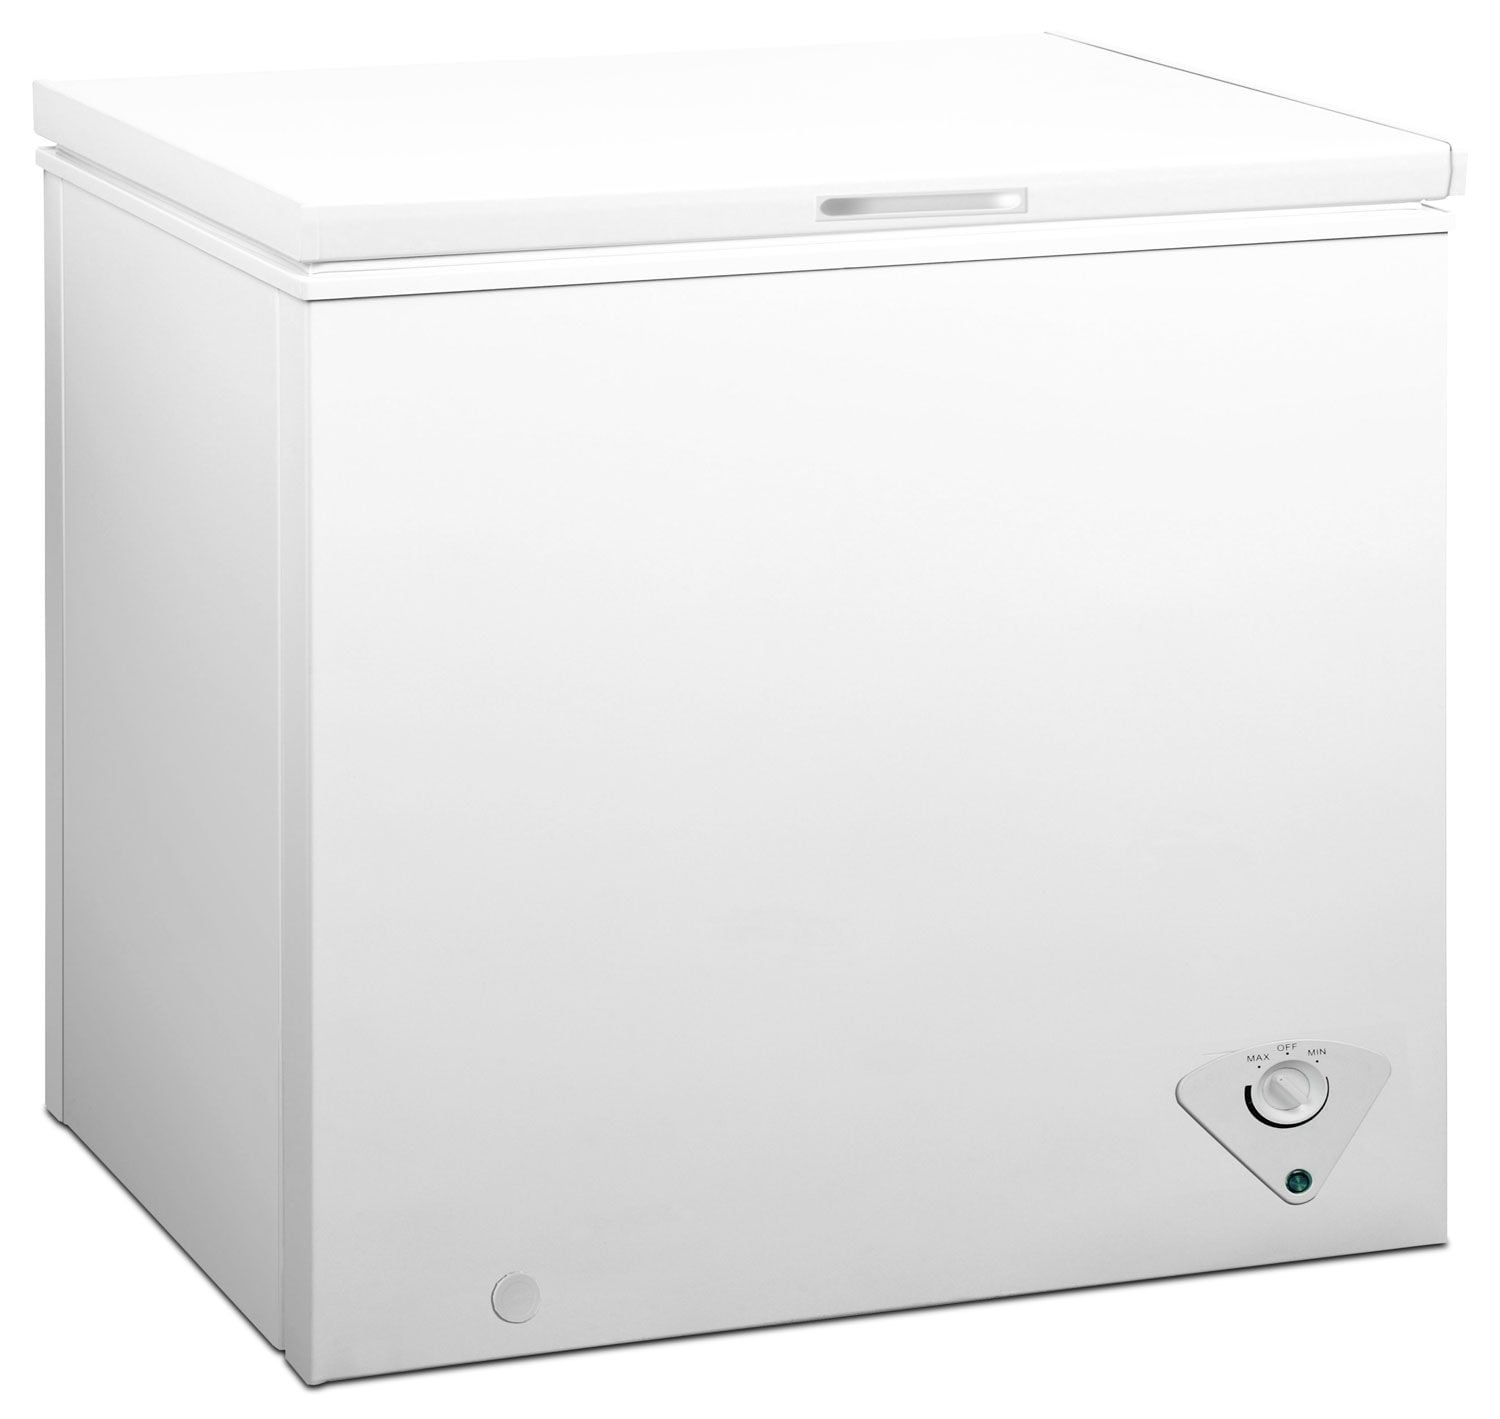 Refrigerators and Freezers - Midea 7.0 Cu. Ft. Chest Freezer - White